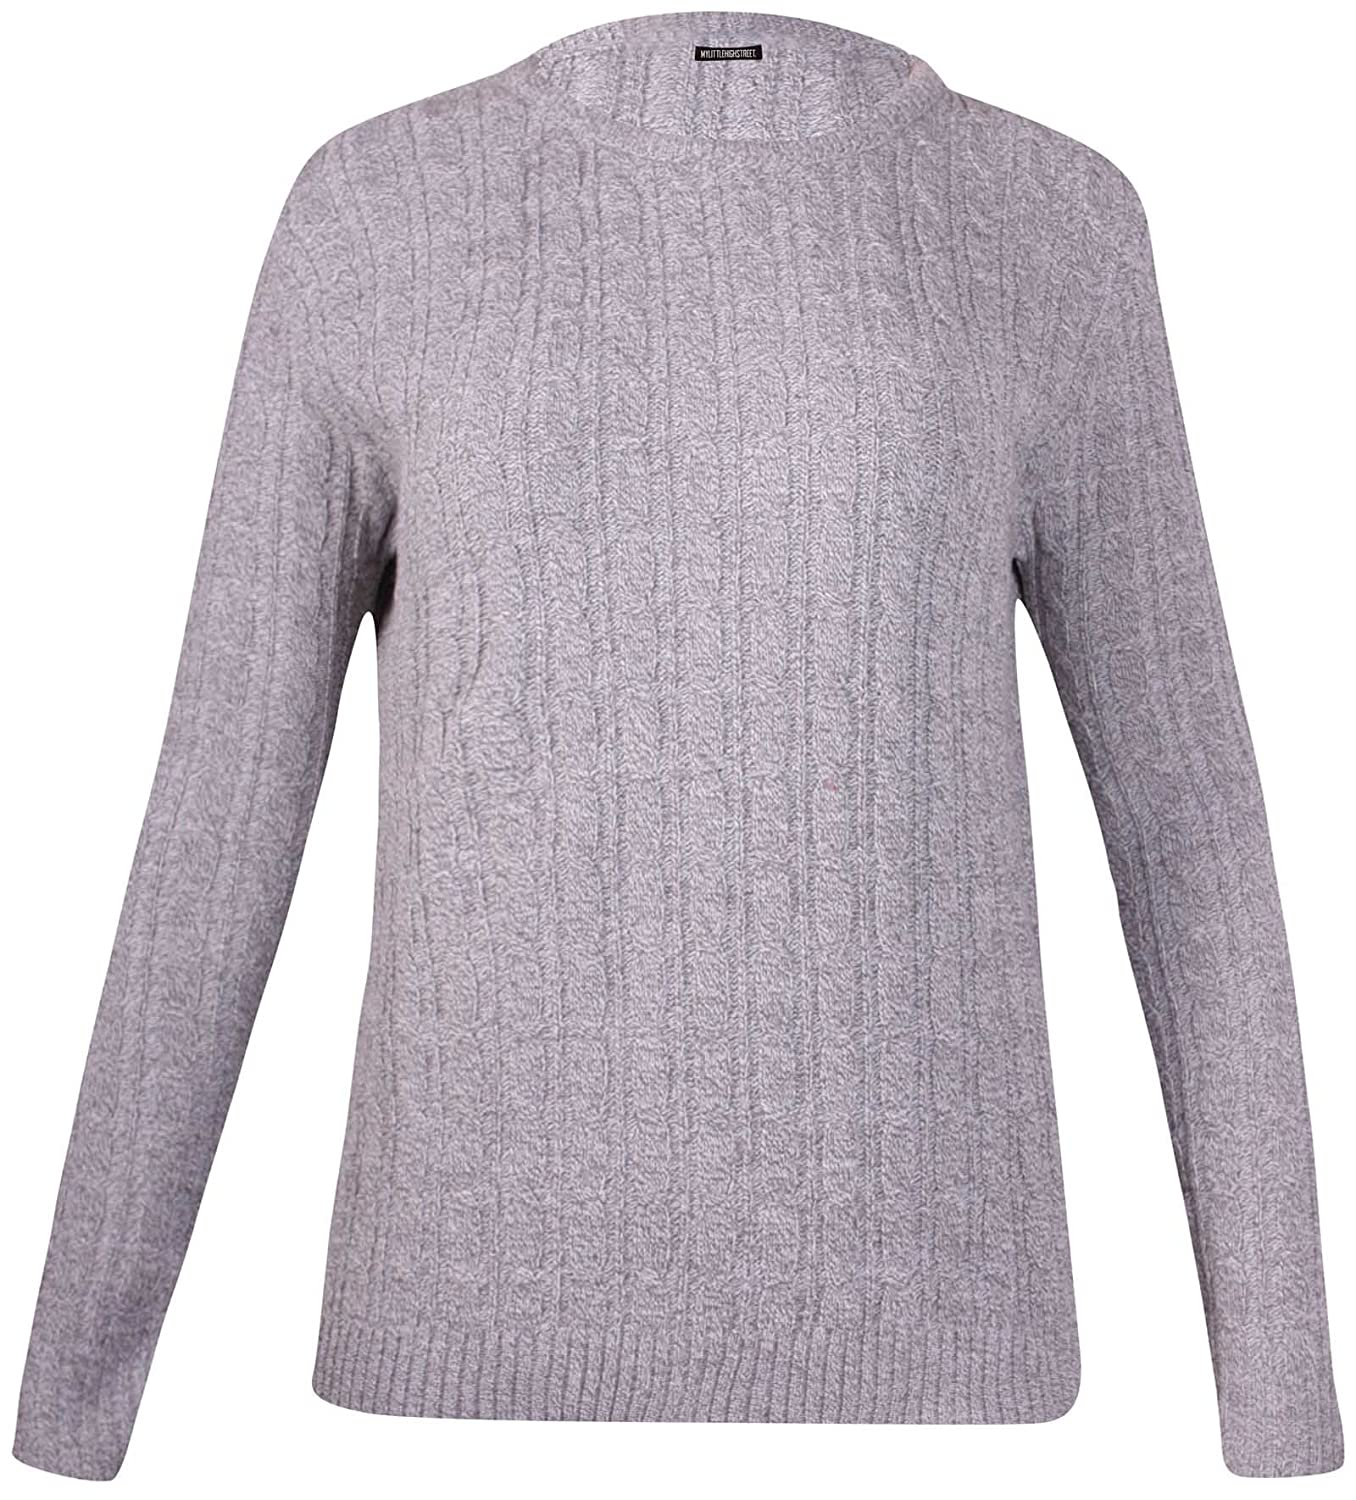 PurpleHanger Women's Plus Size Cable Knitted Jumper Sweater Top